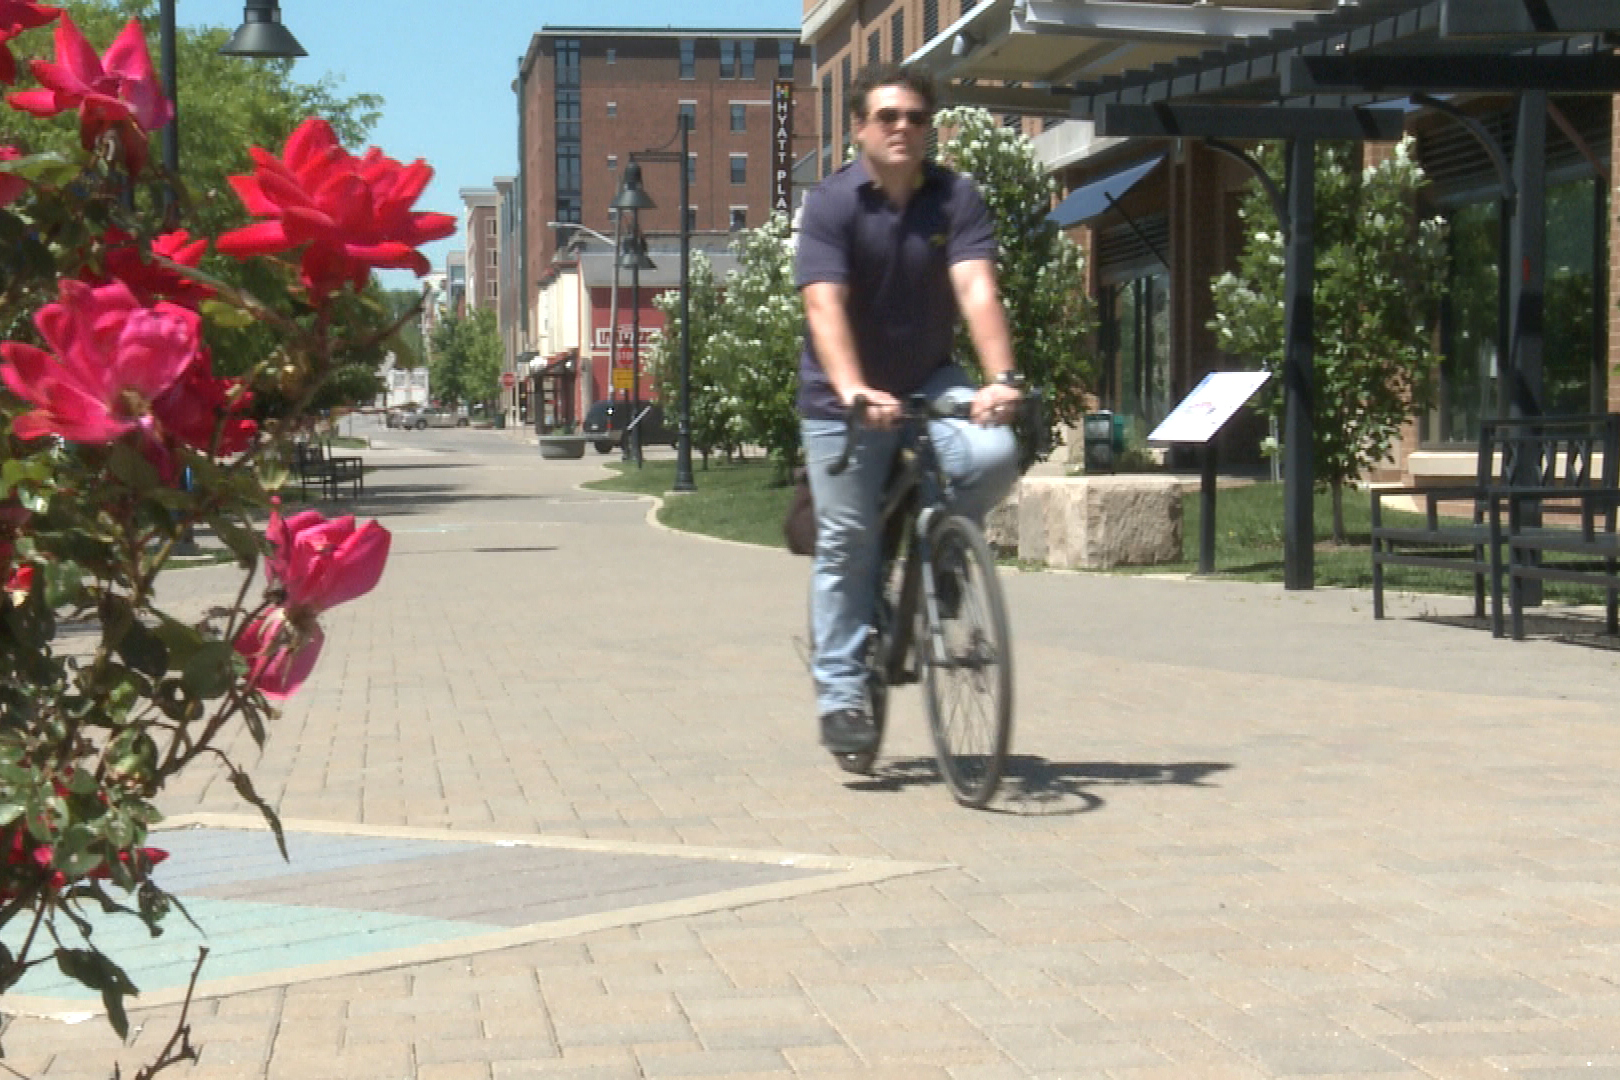 Bloomington changes bike laws